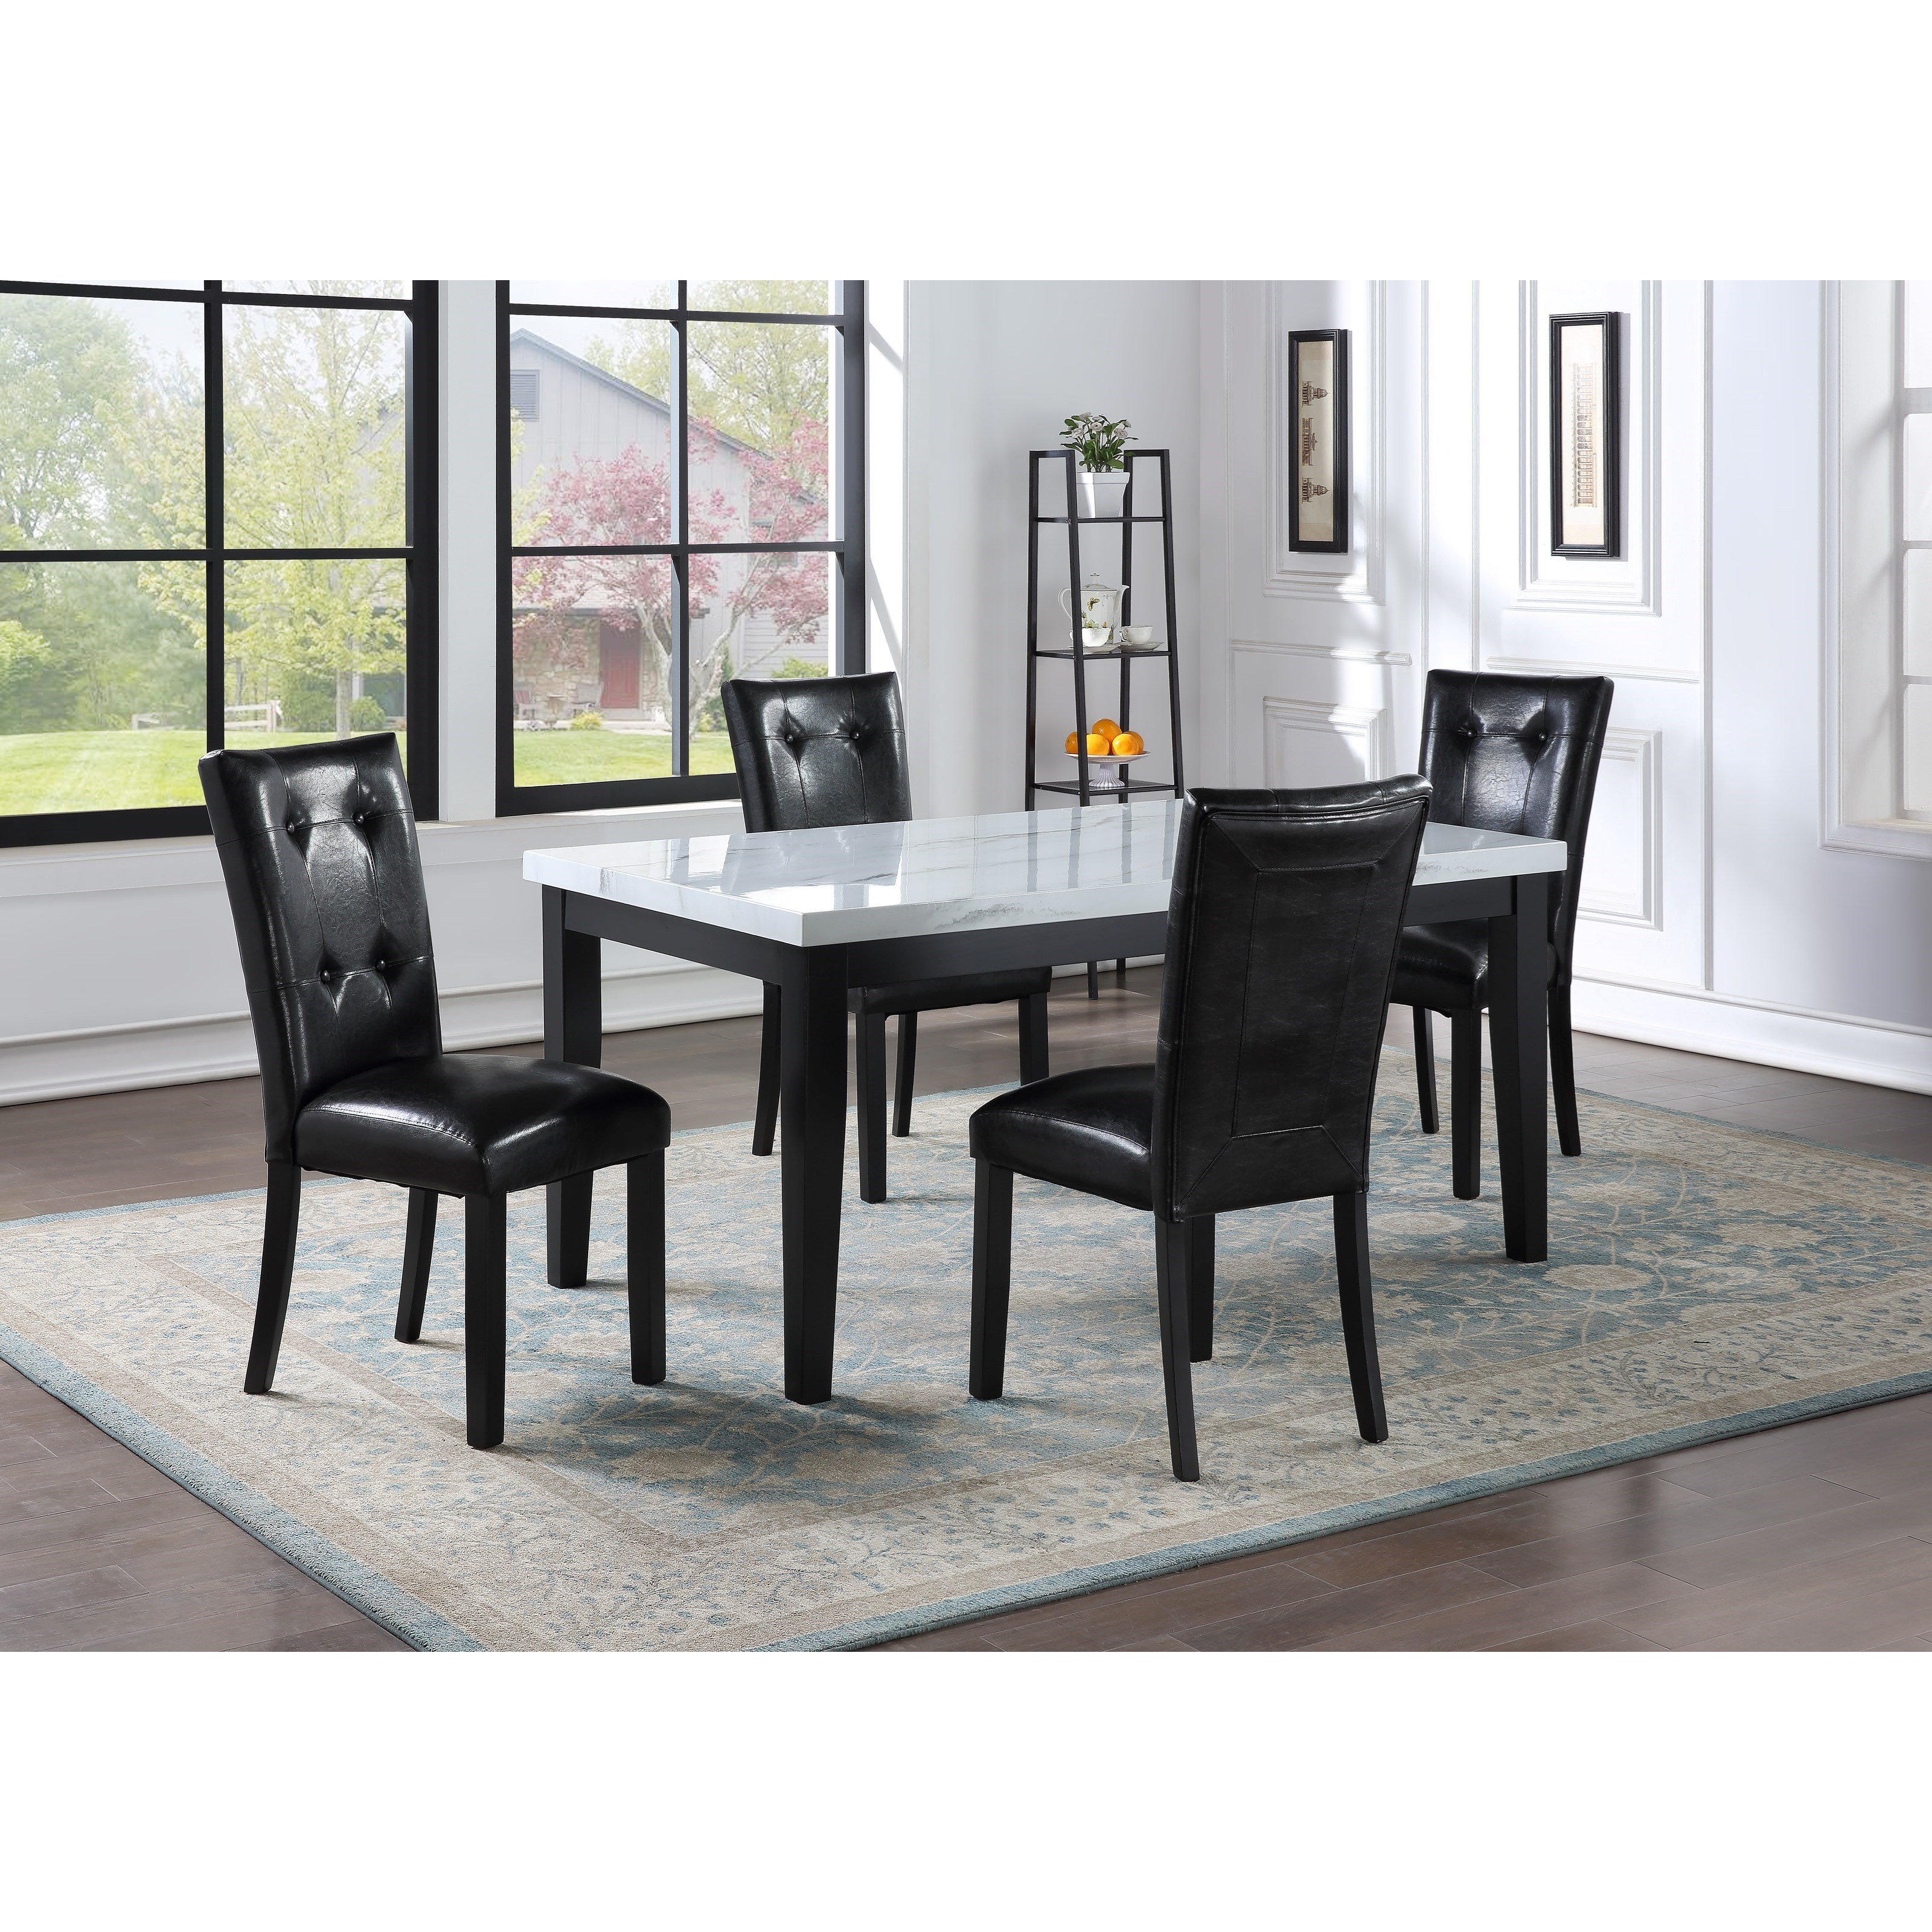 Sterling 5-Piece Table and Chair Set by Steve Silver at Walker's Furniture